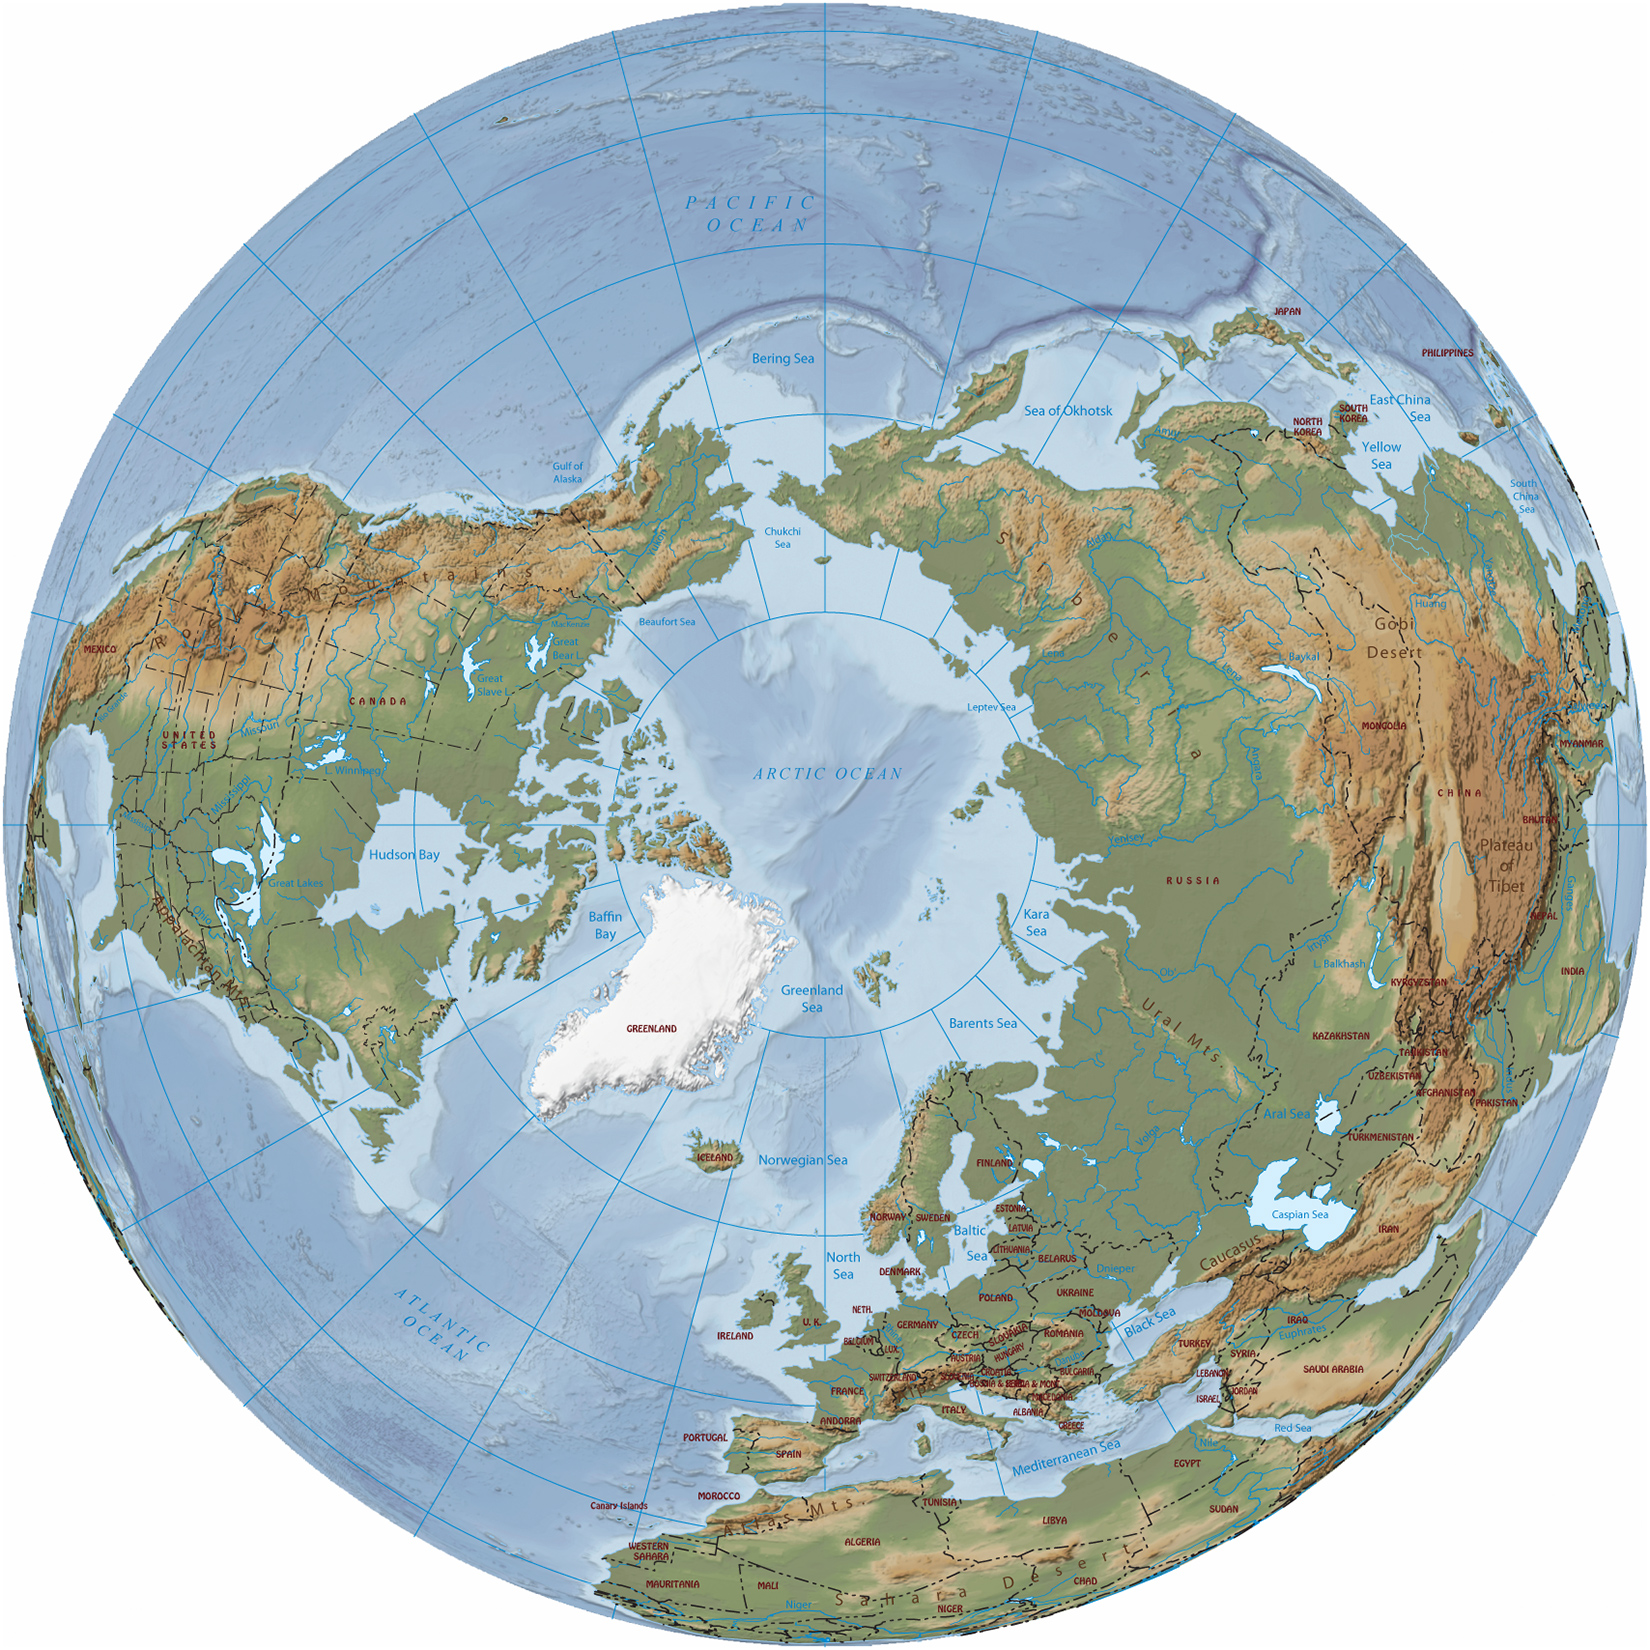 Arctic ocean region map there are 8 arctic nations canada denmark finland iceland norway sweden russia and united states of america alaska alaska political map gumiabroncs Gallery